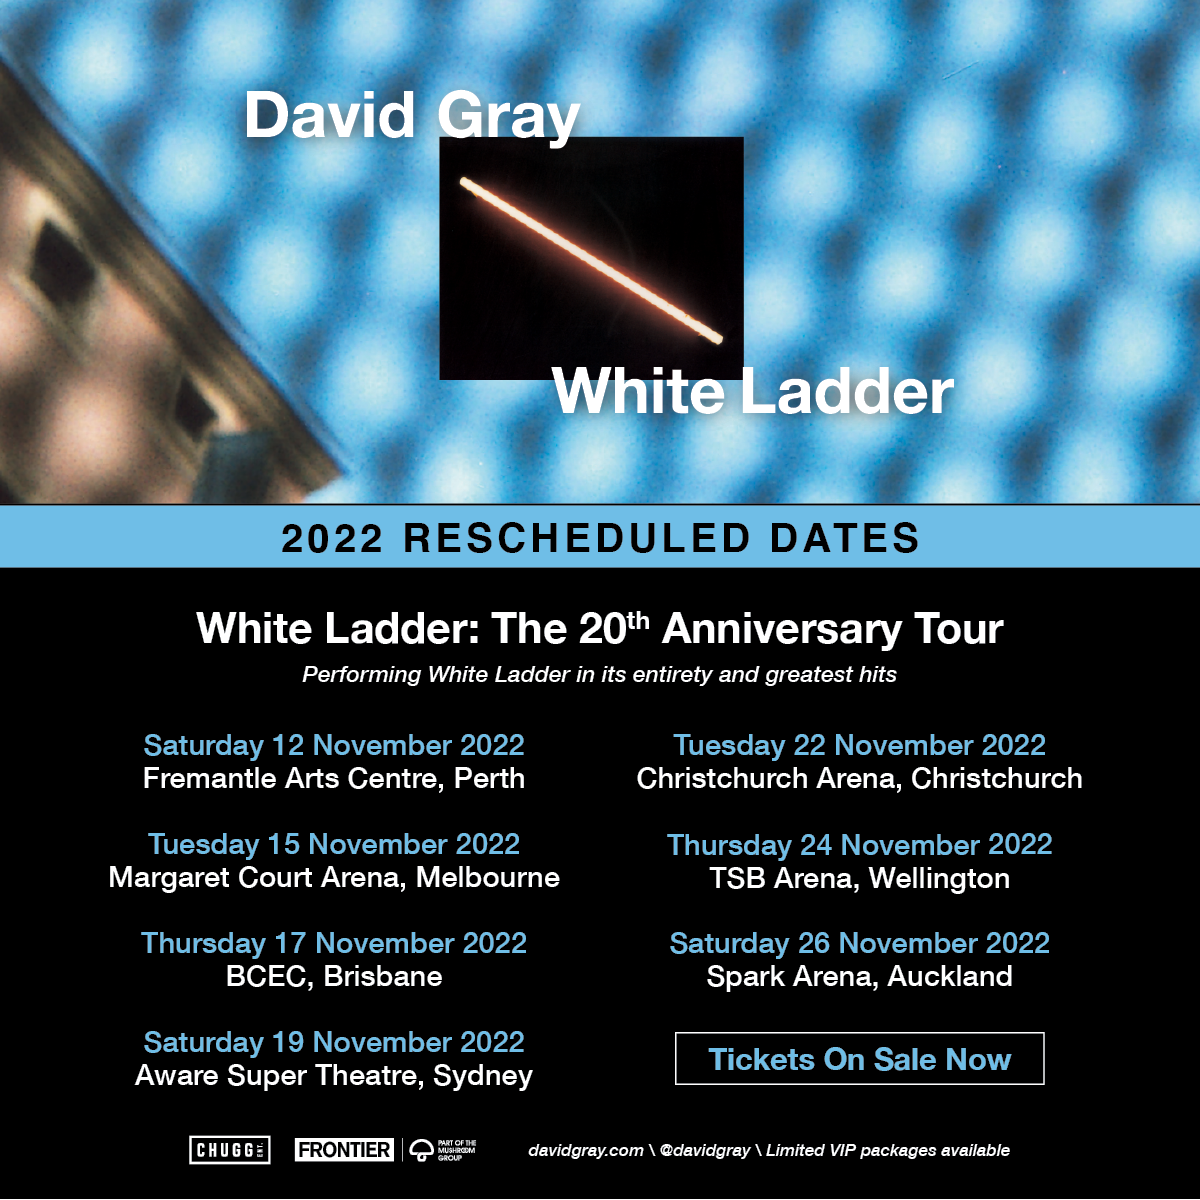 DAVID GRAY RESCHEDULES AU-NZ DATES FOR WHITE LADDER: THE 20TH ANNIVERSARY TOUR TO NOVEMBER 2022